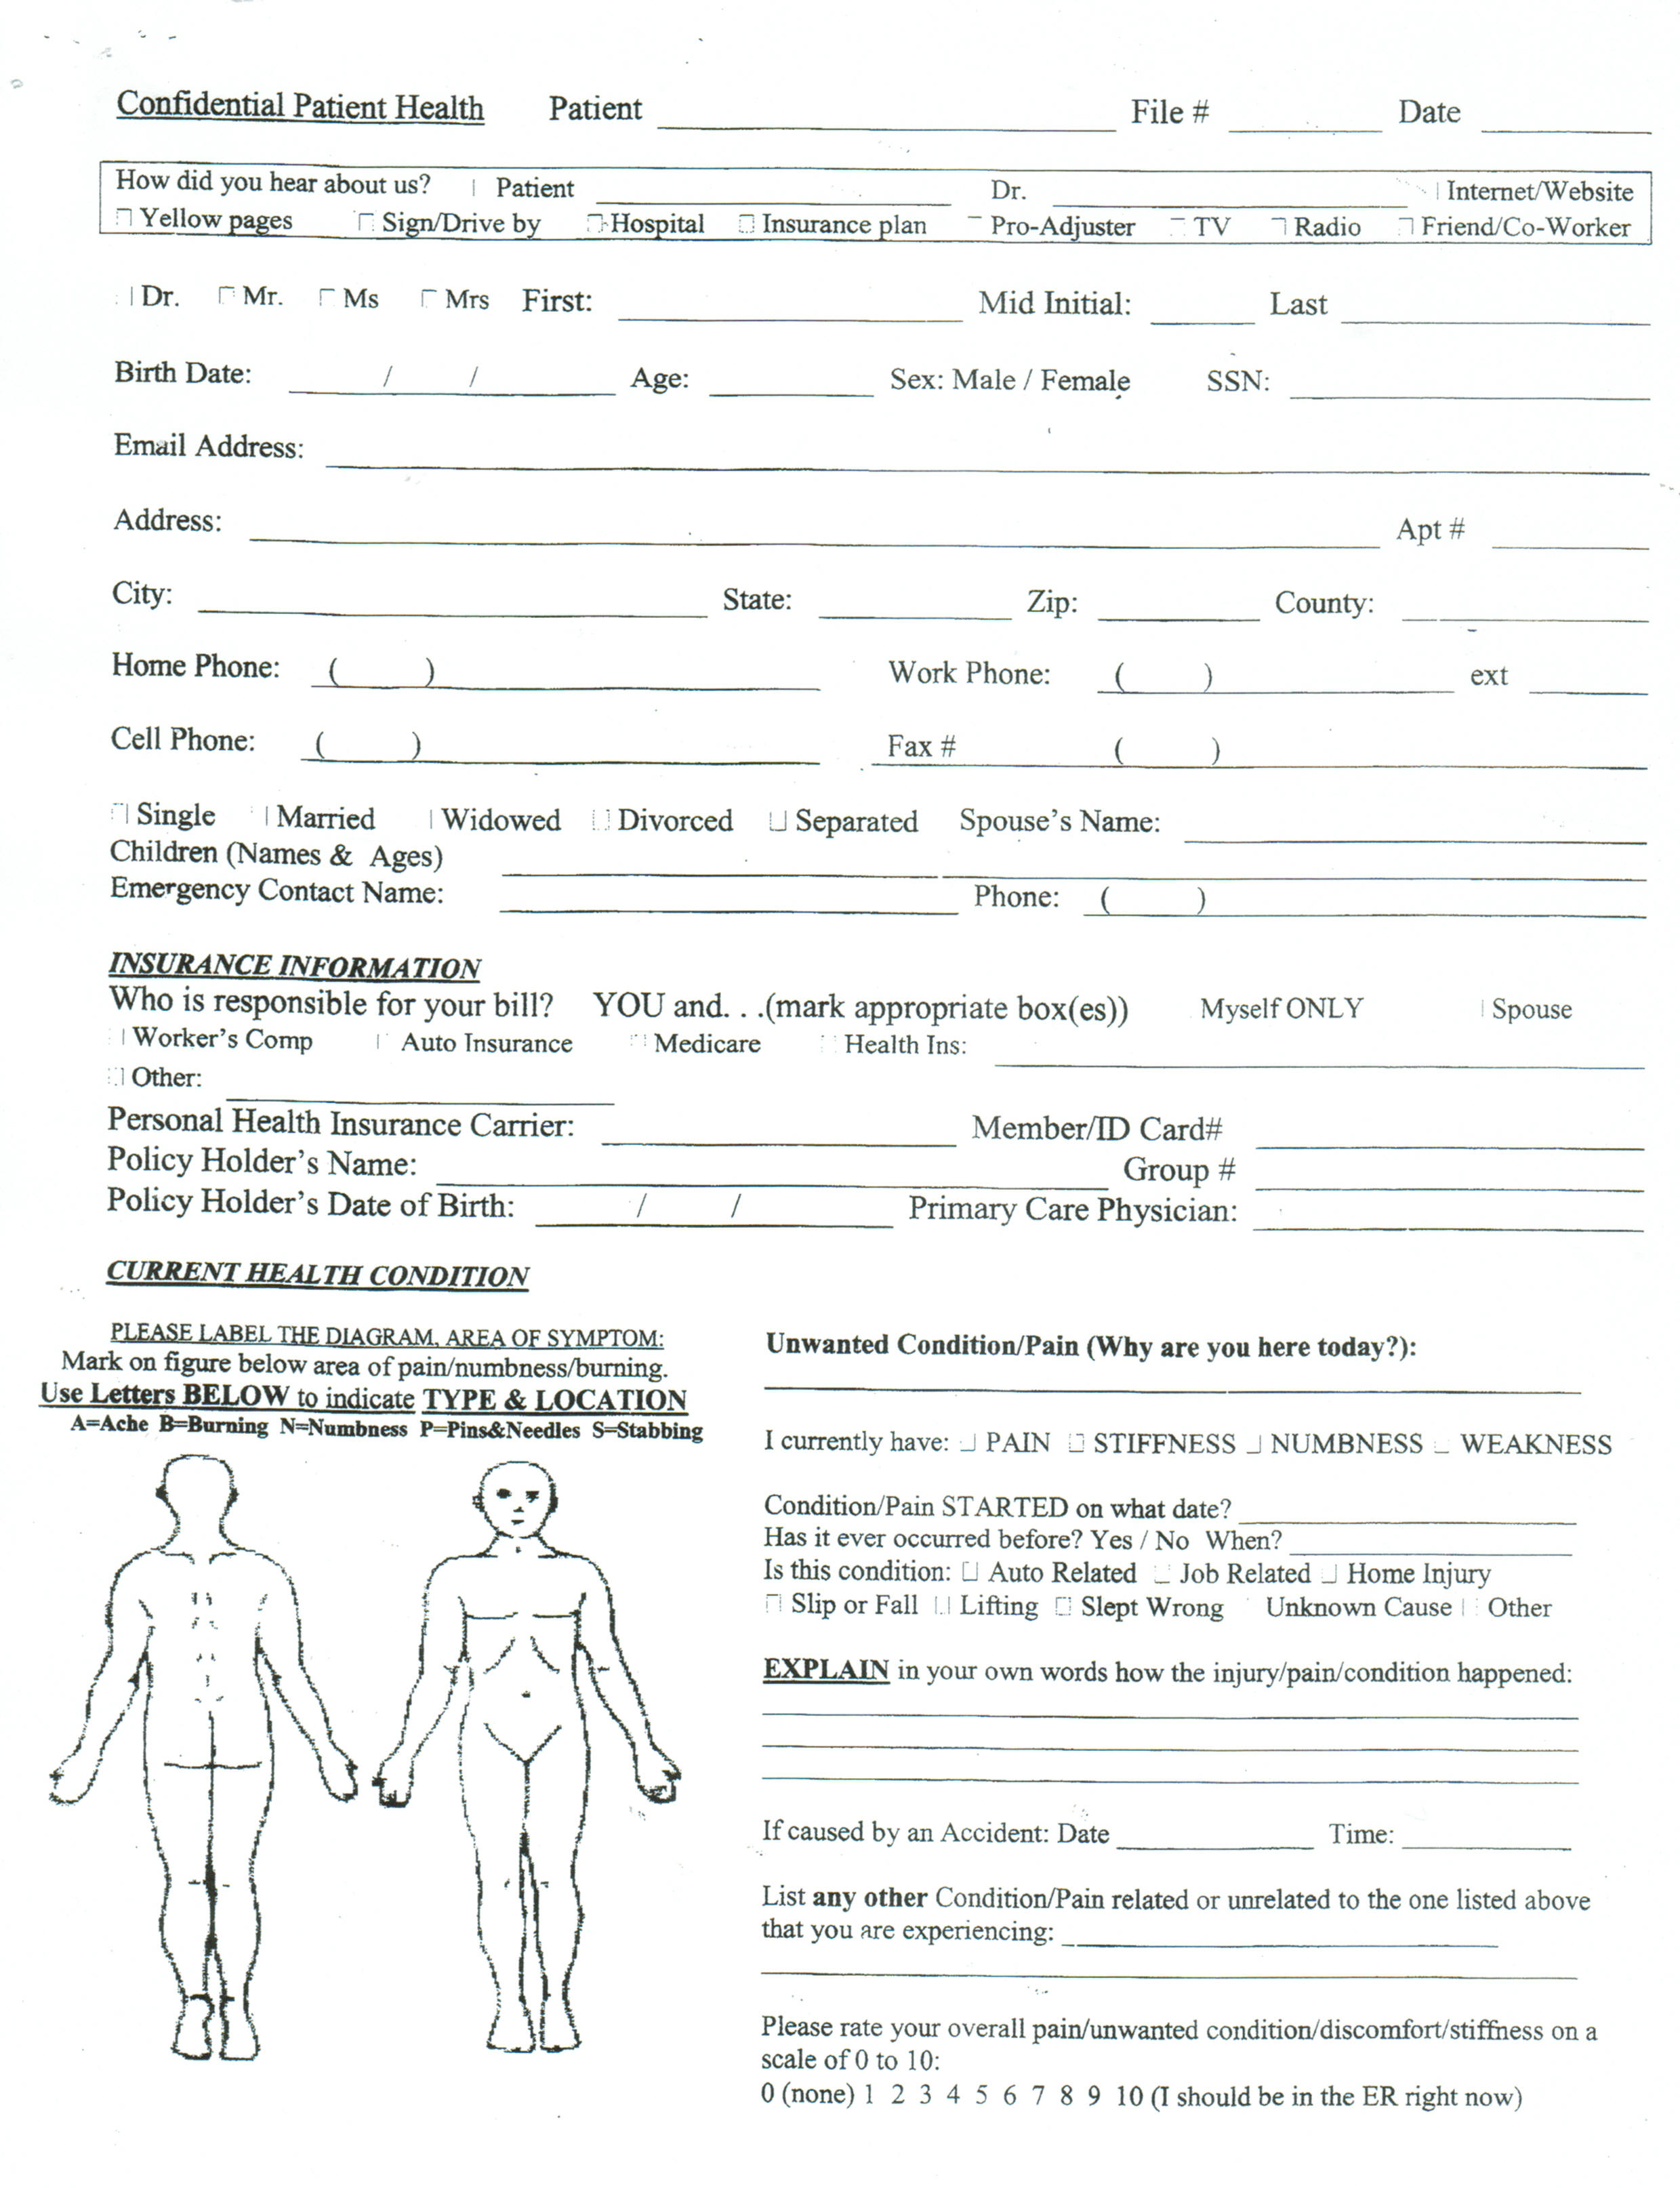 patient intake form template